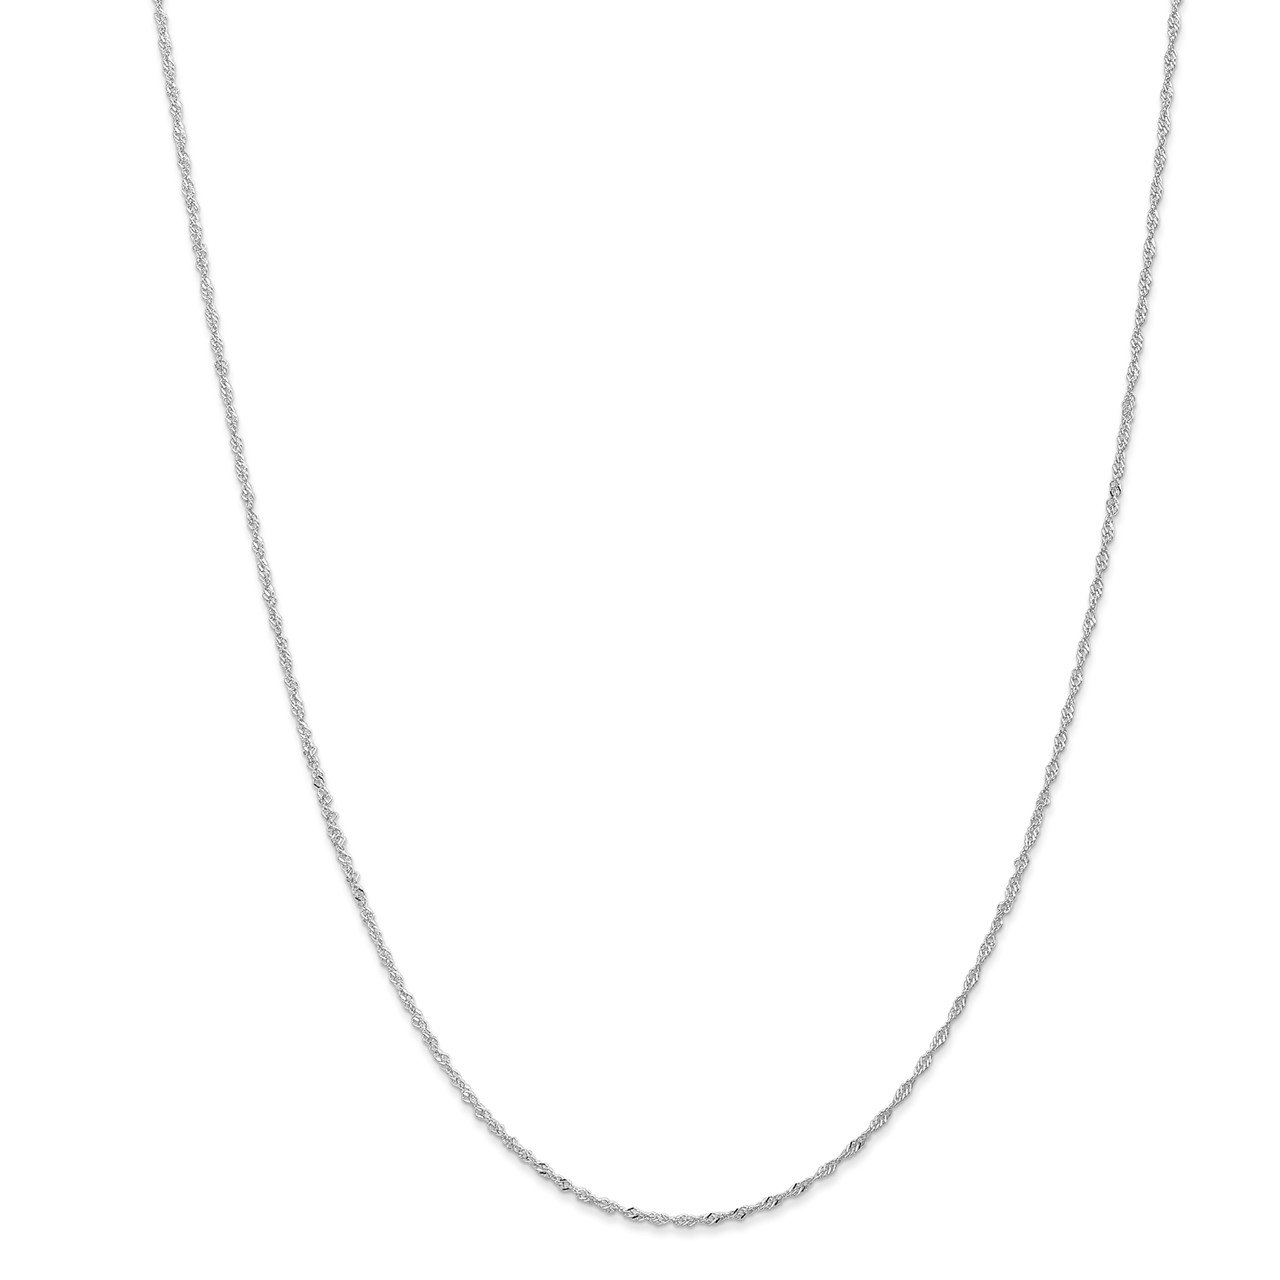 Leslie's 14K White Gold 1mm Singapore with Lobster Clasp Chain